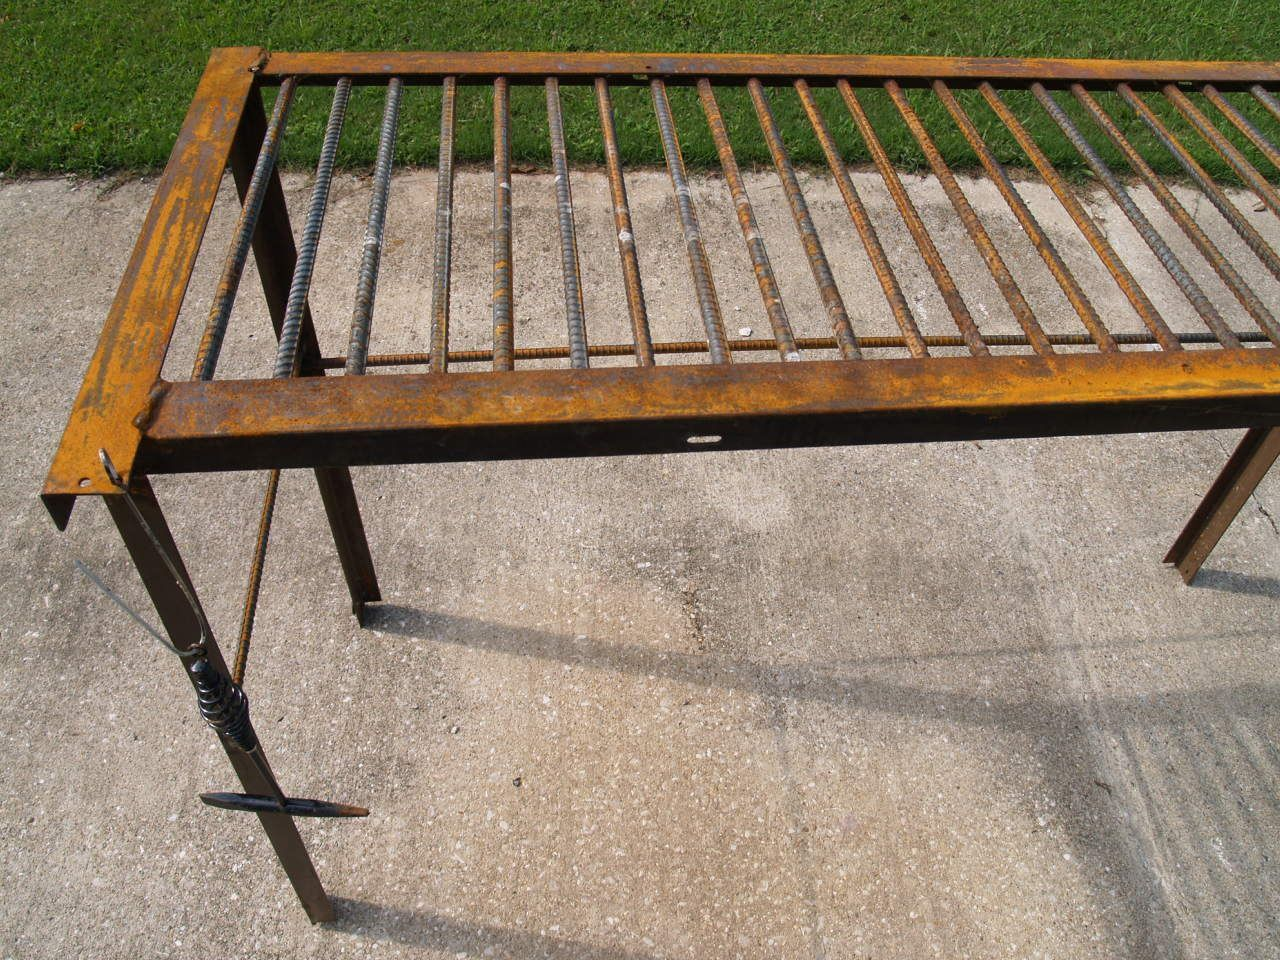 How To Build A Basic Welding Table From Rebar And Used Bed Frame